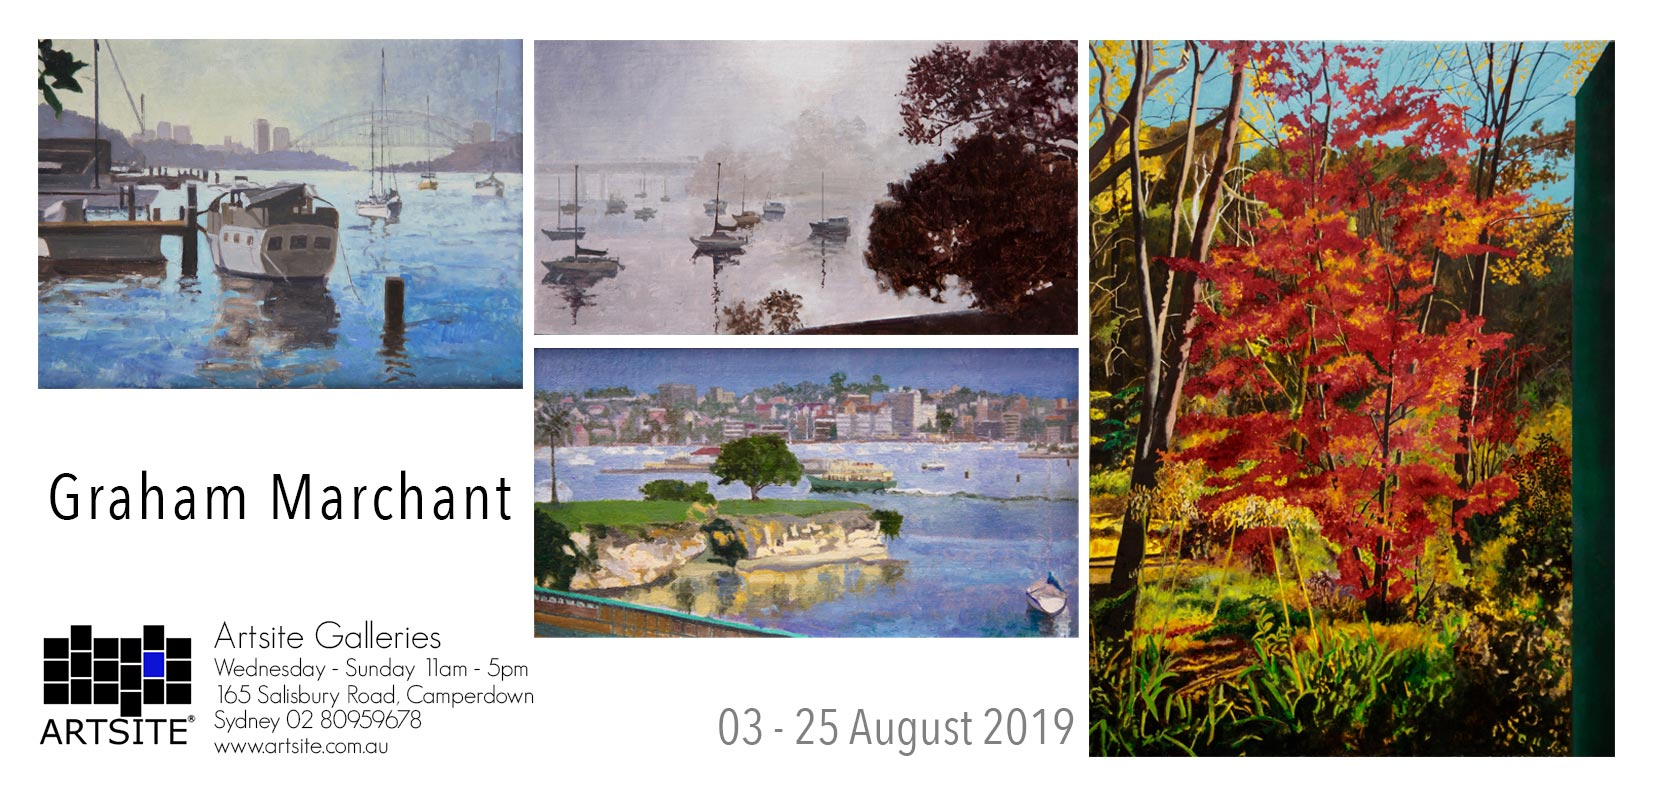 Artsite Gallery Exhibition | Gallery.1 | Graham Marchant | Seasonal Nocturnes | Solo Exhibition | 03 - 25 August 2019.